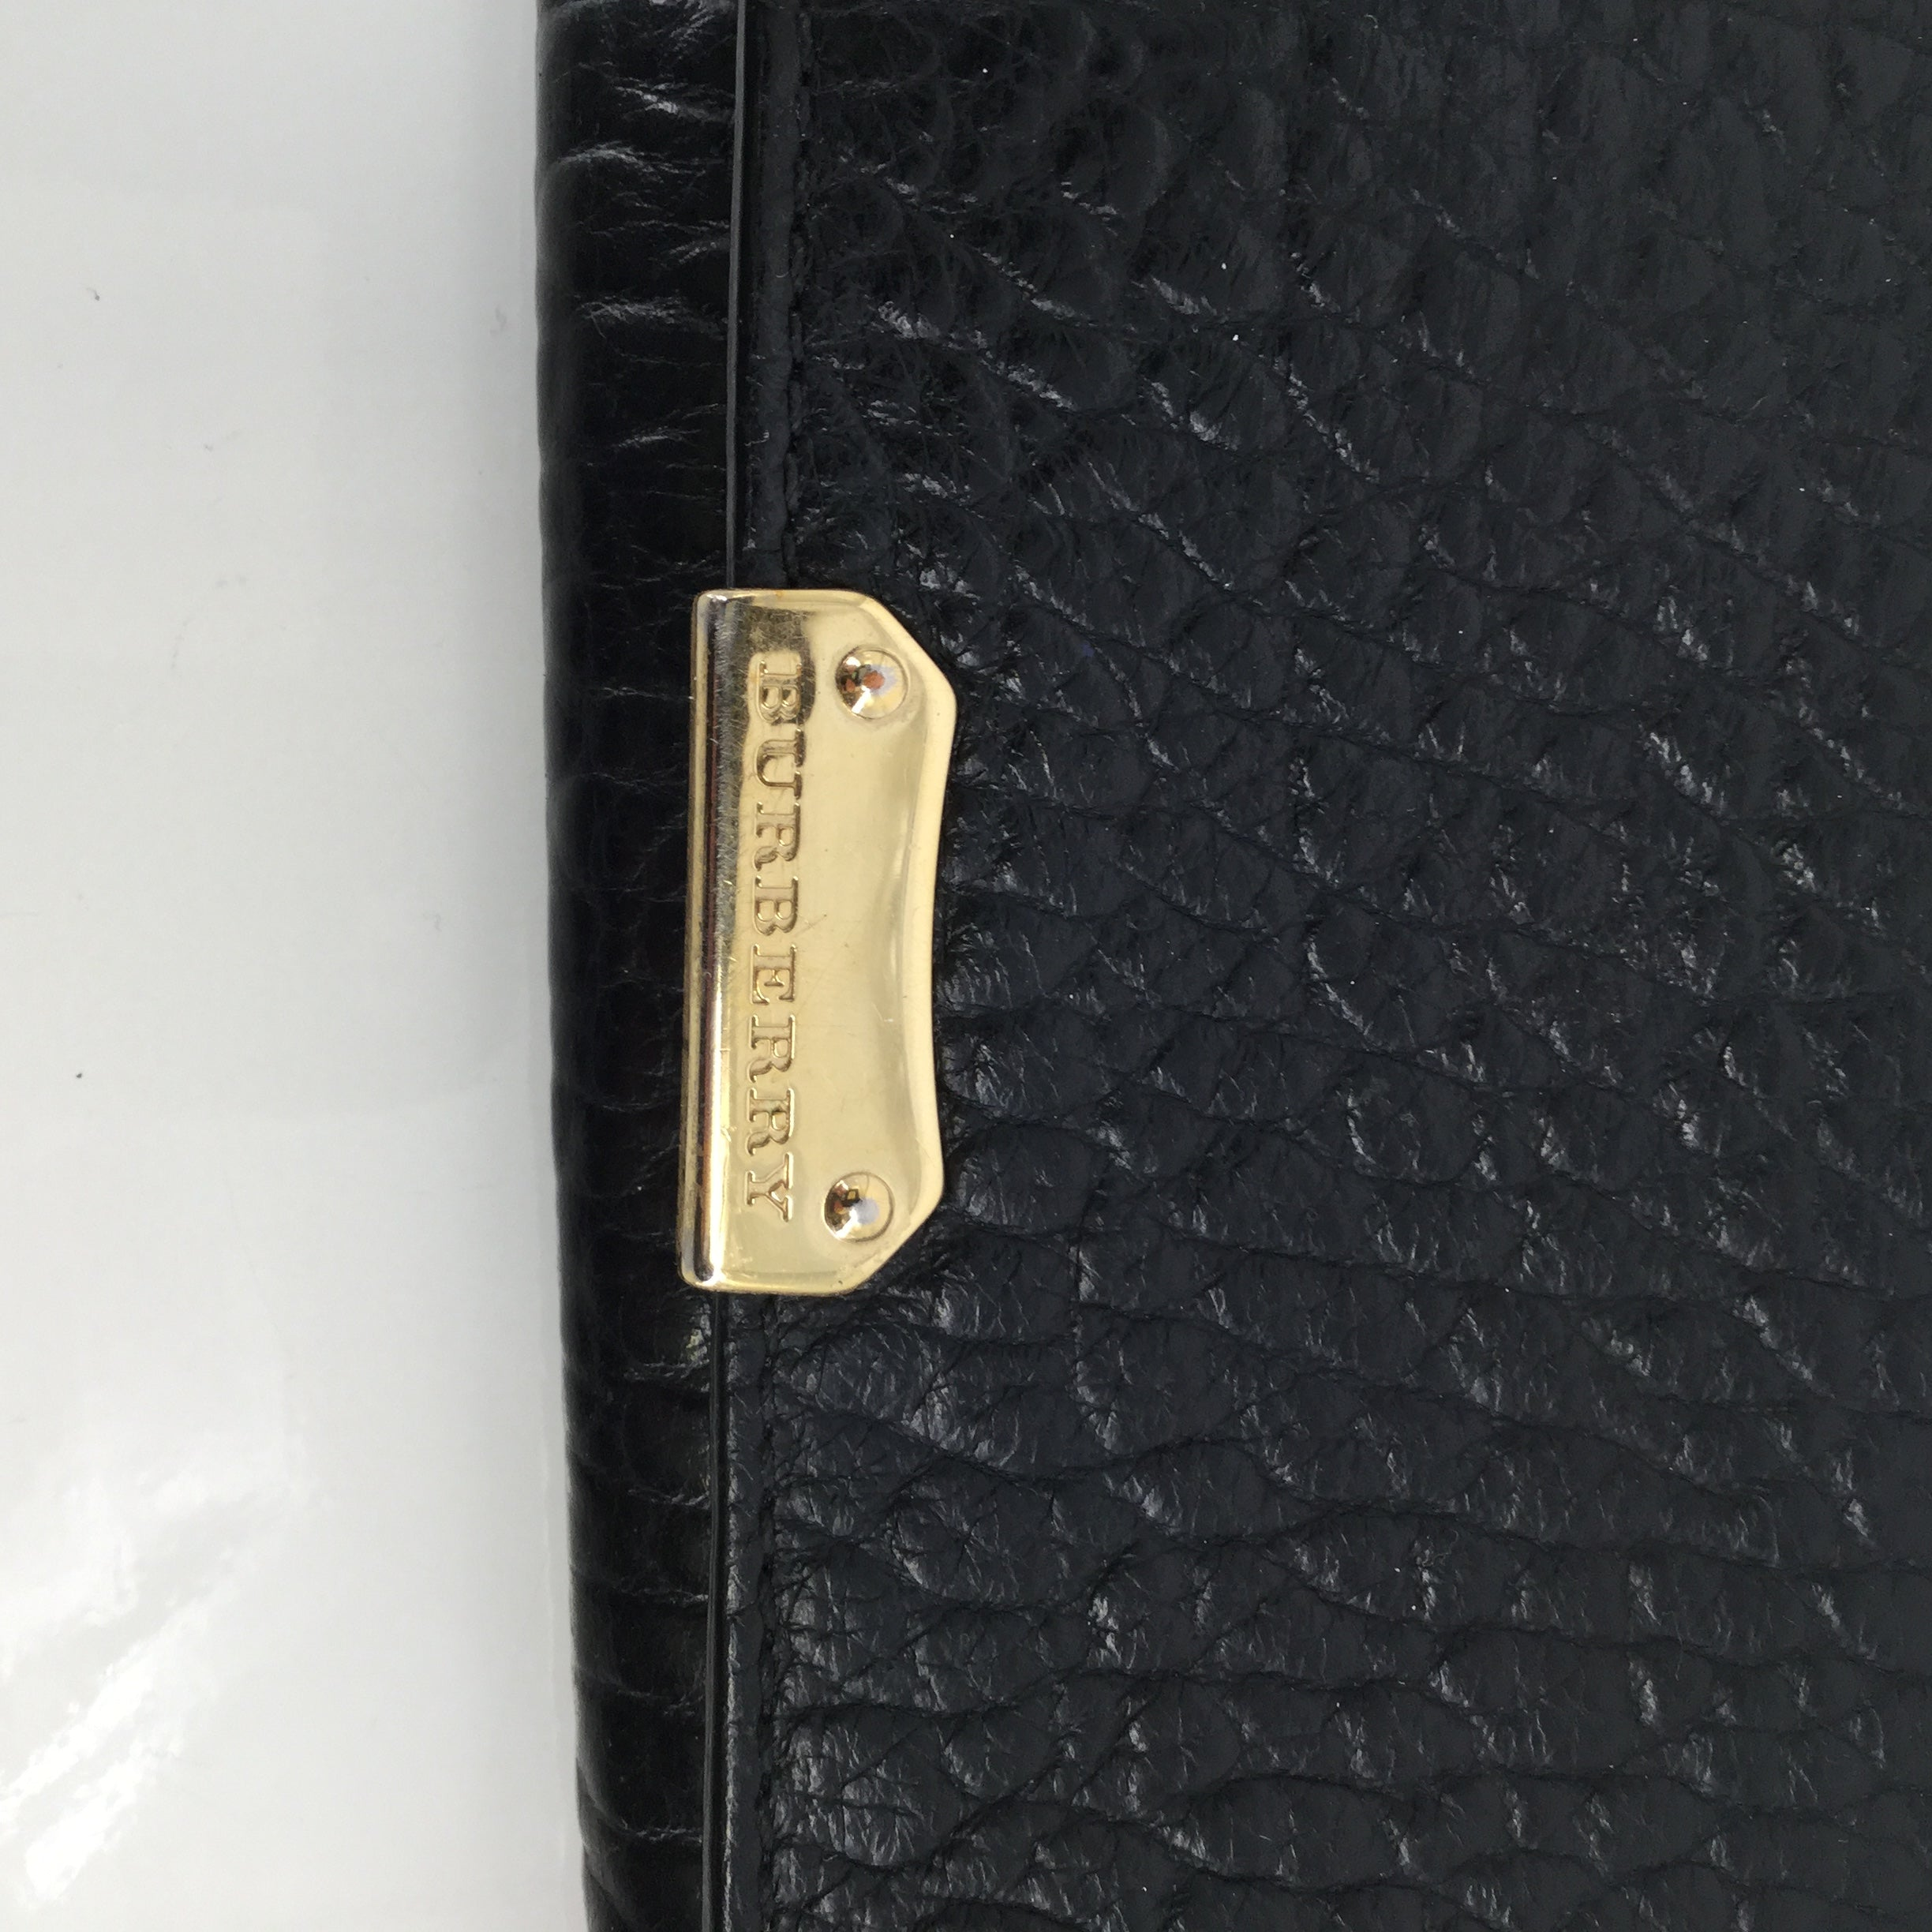 Wallet By Burberry  Size: Small - <P>BRAND: BURBERRY , STYLE: WALLET , COLOR: BLACK , SIZE: SMALL , SKU: 127-4942-2331</P> <P>THIS BURBERRY WALLET IS VERY GENTLY USED AND IN GREAT CONDITION. IT HAS SEVERAL CARD SLOTS AND SPACE FOR BOTH CHANGE AND CASH. </P>